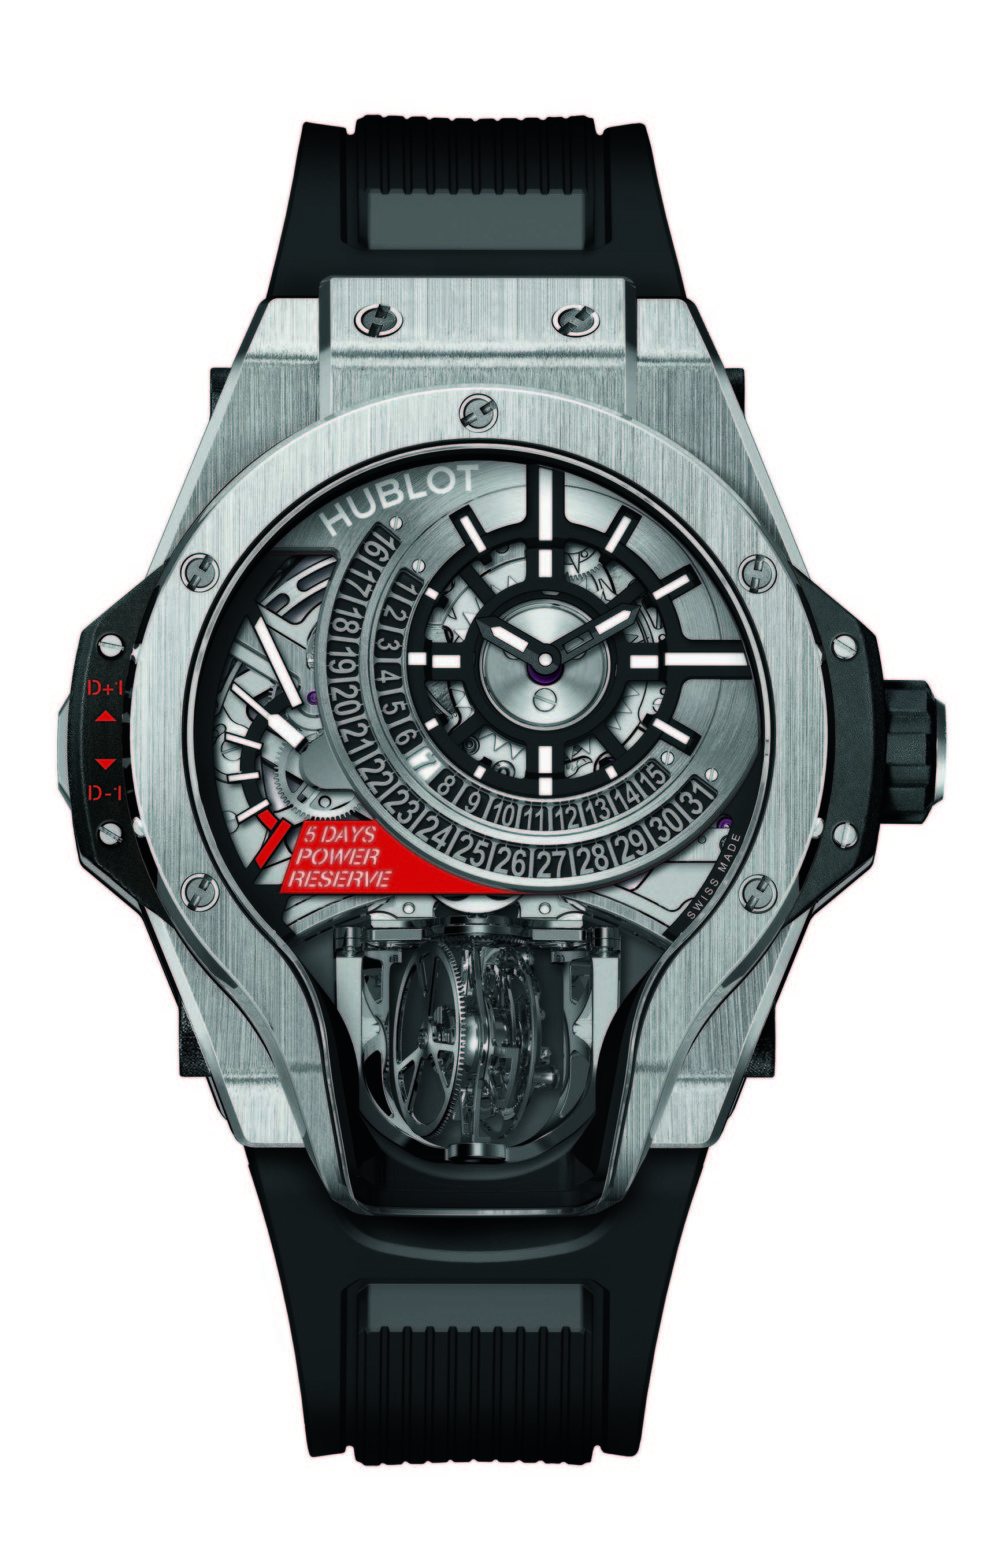 Hublot MP 09 Tourbillon Bi-Axis